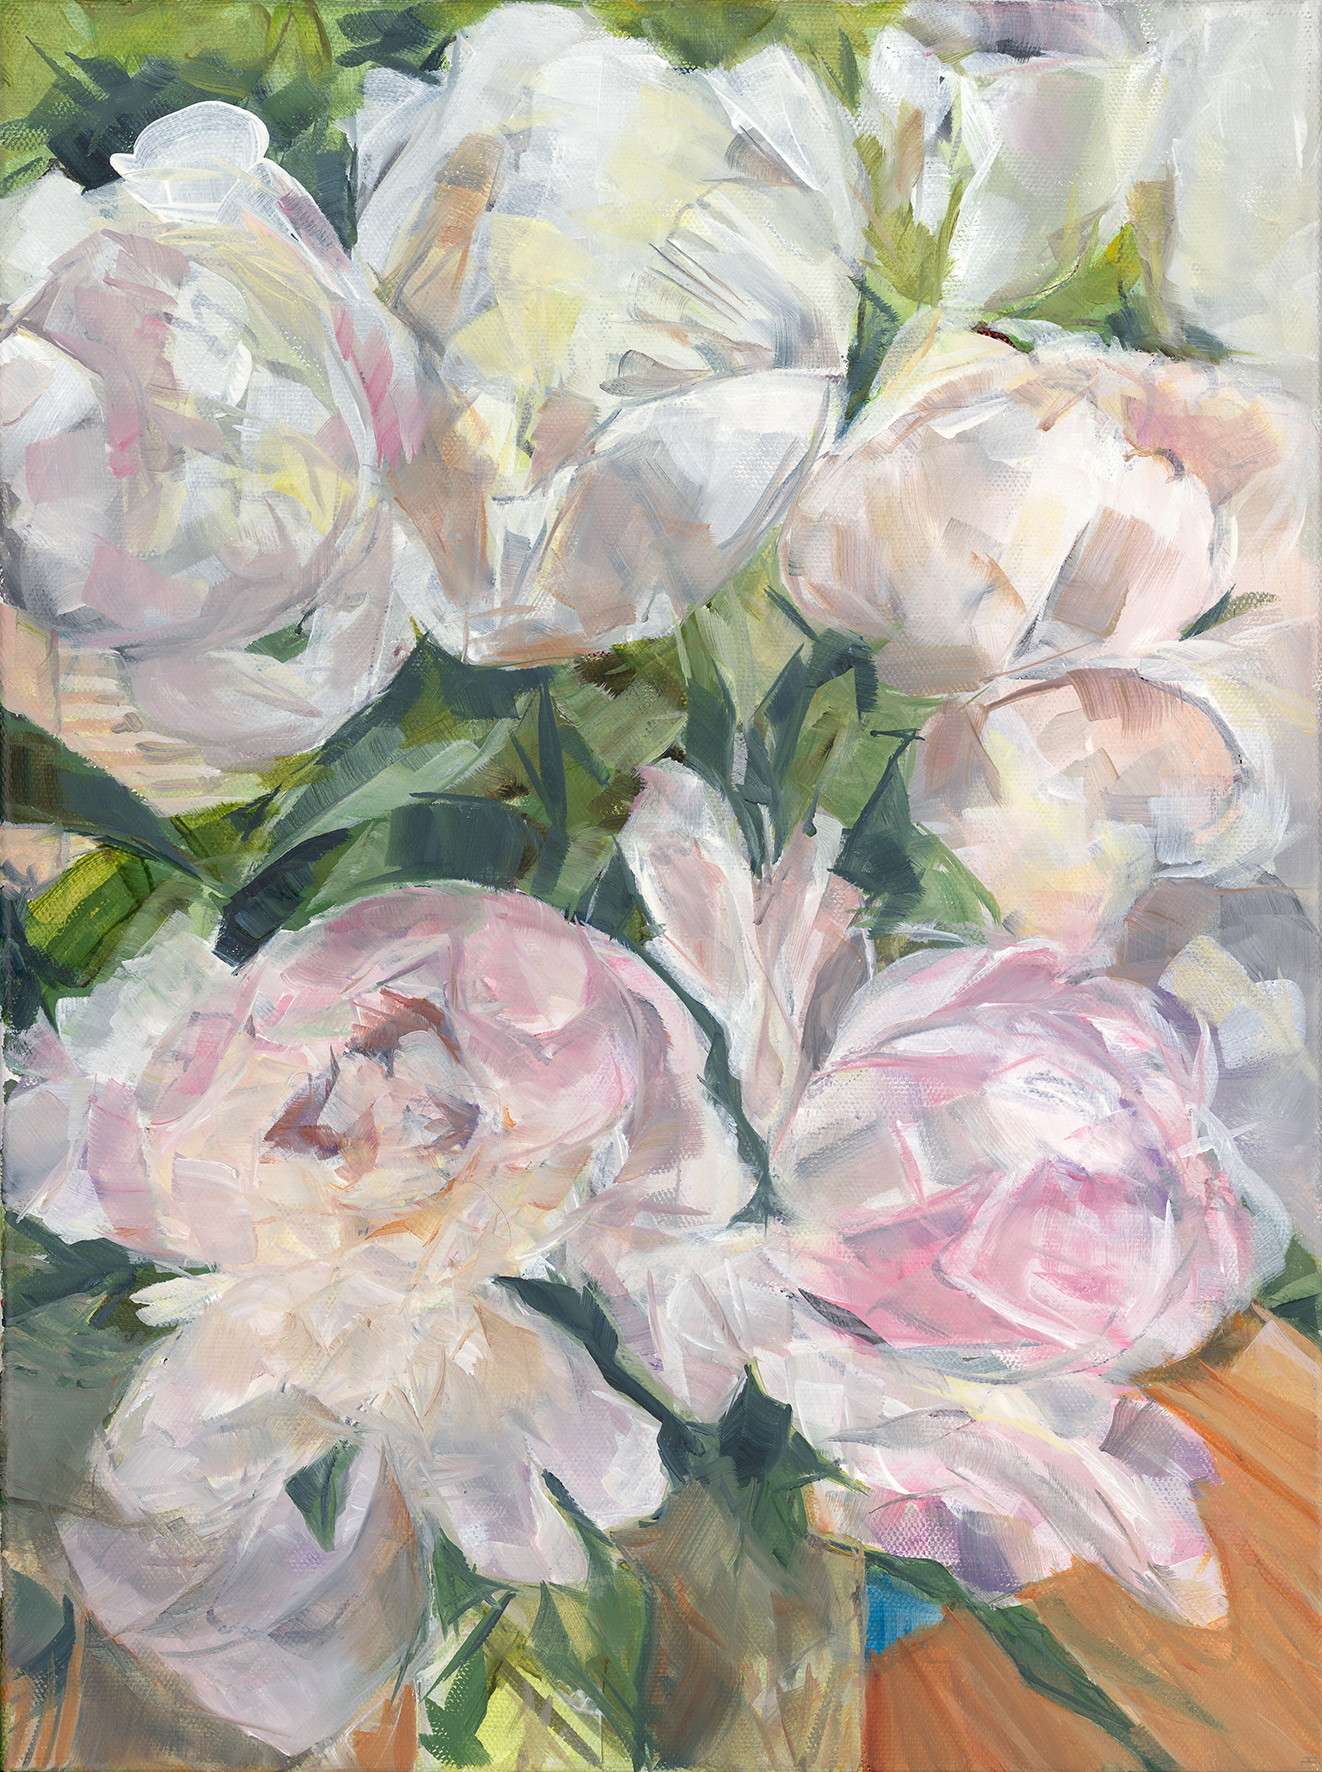 Hint of pink peonies as an A3 Giclee print.